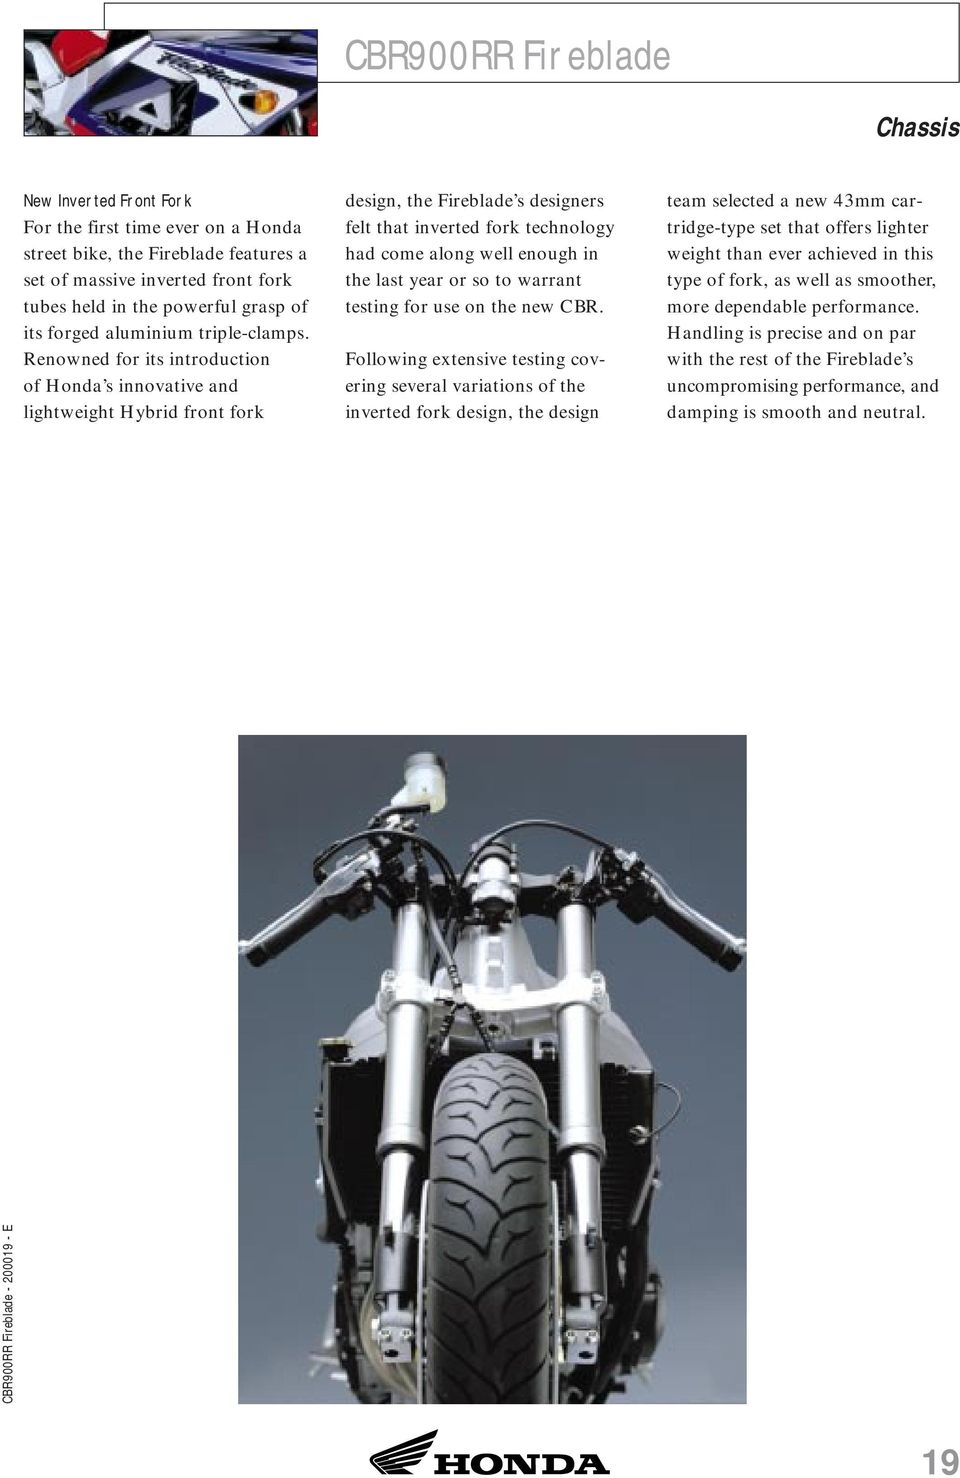 Renowned for its introduction of Honda s innovative and lightweight Hybrid front fork design, the Fireblade s designers felt that inverted fork technology had come along well enough in the last year